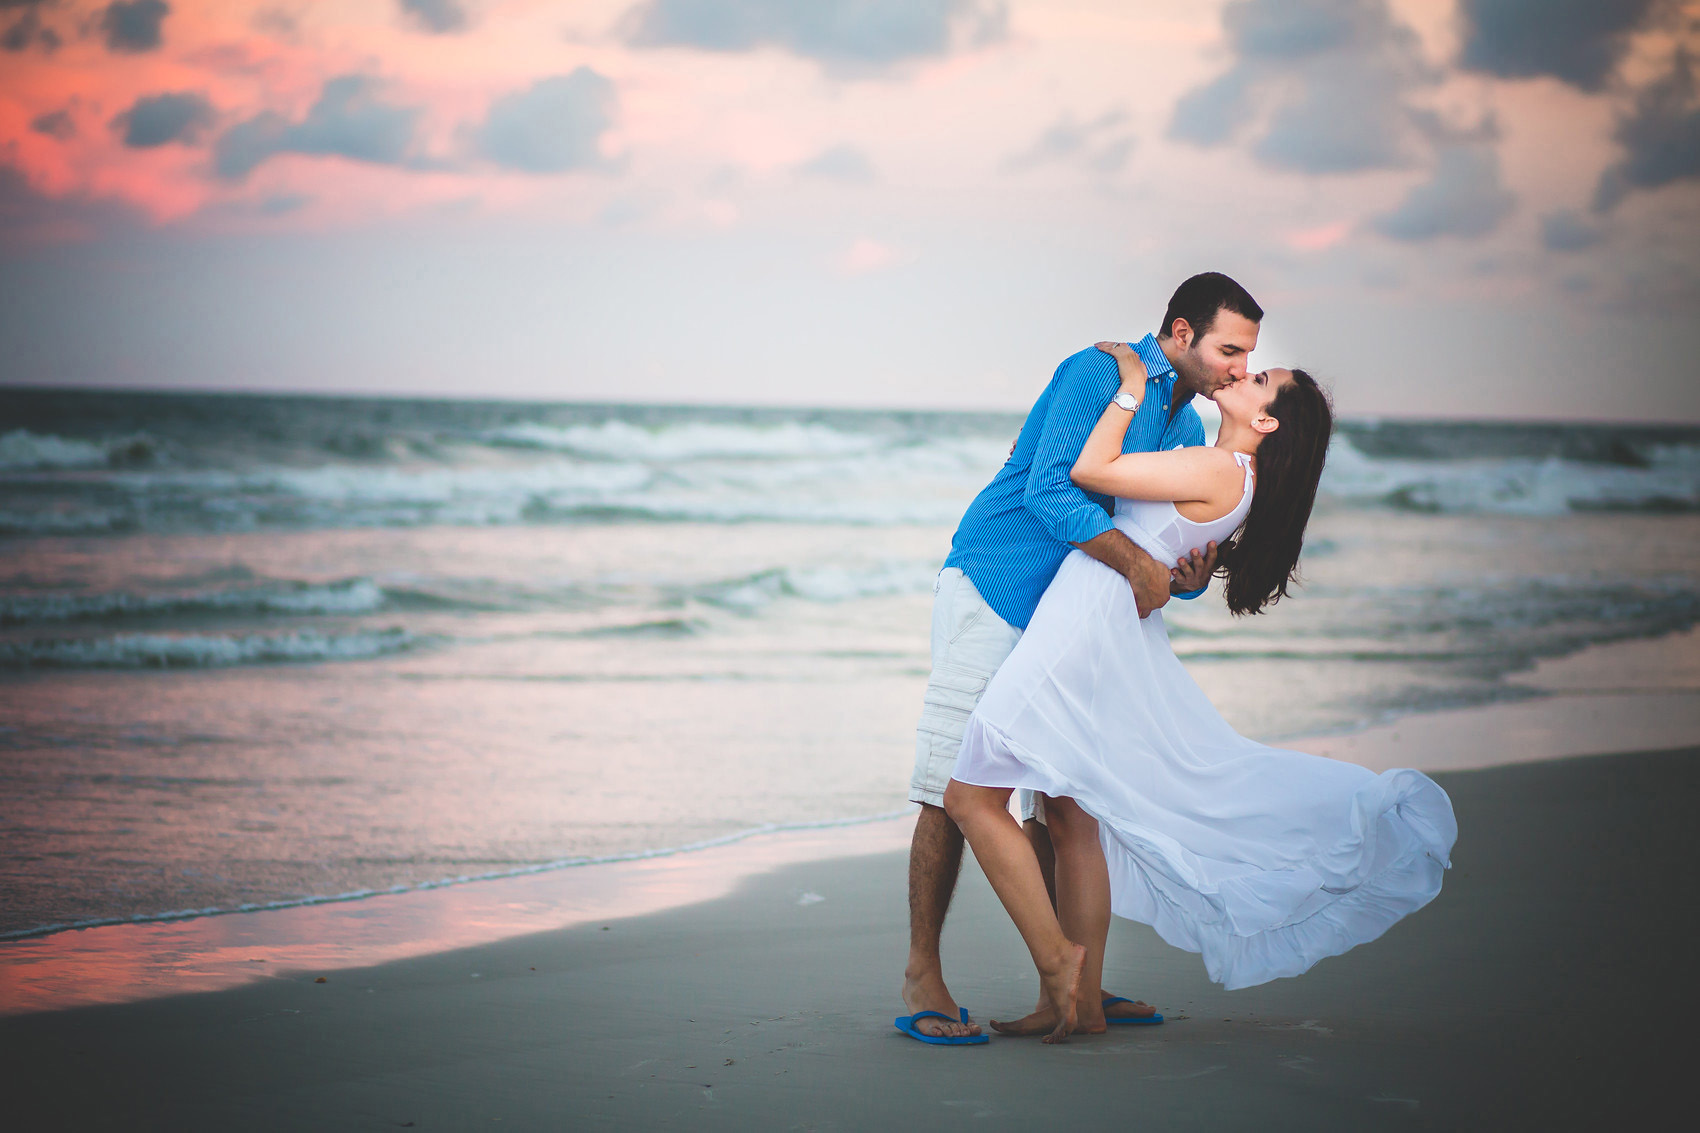 adam-szarmack-atlantic-beach-engagement-photographer-9.jpg